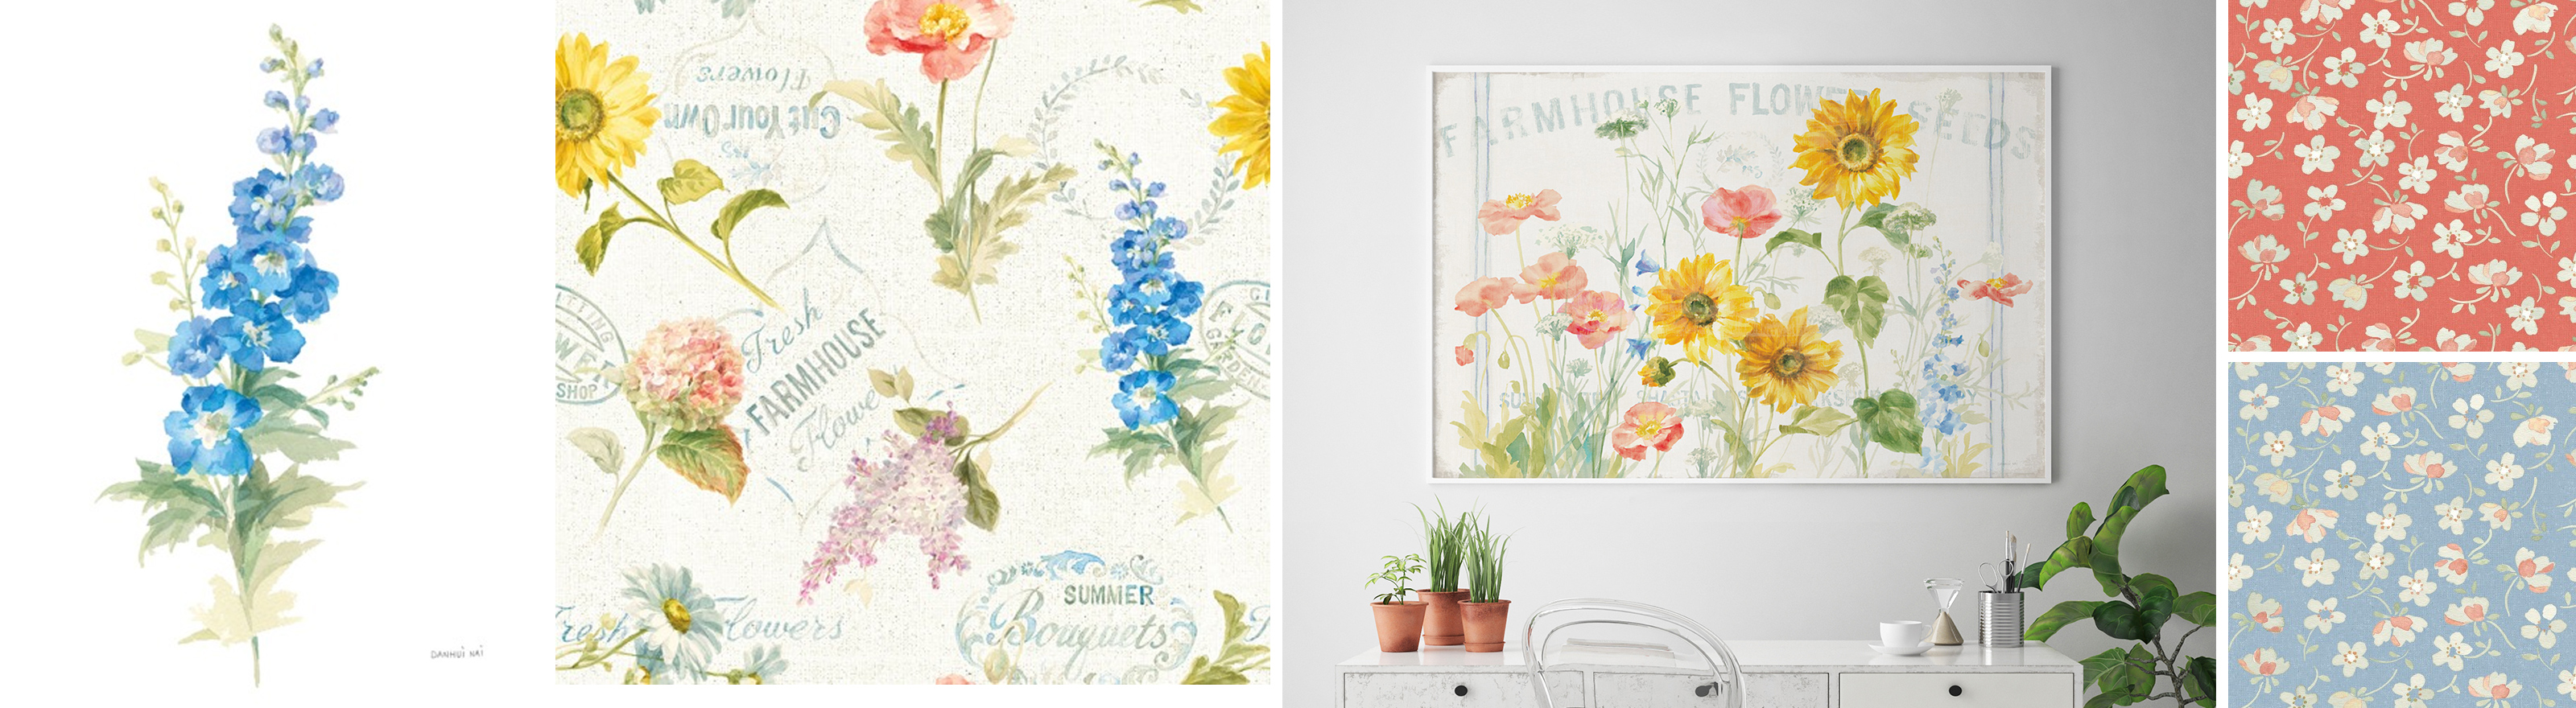 Spring Inspired Art and Patterns